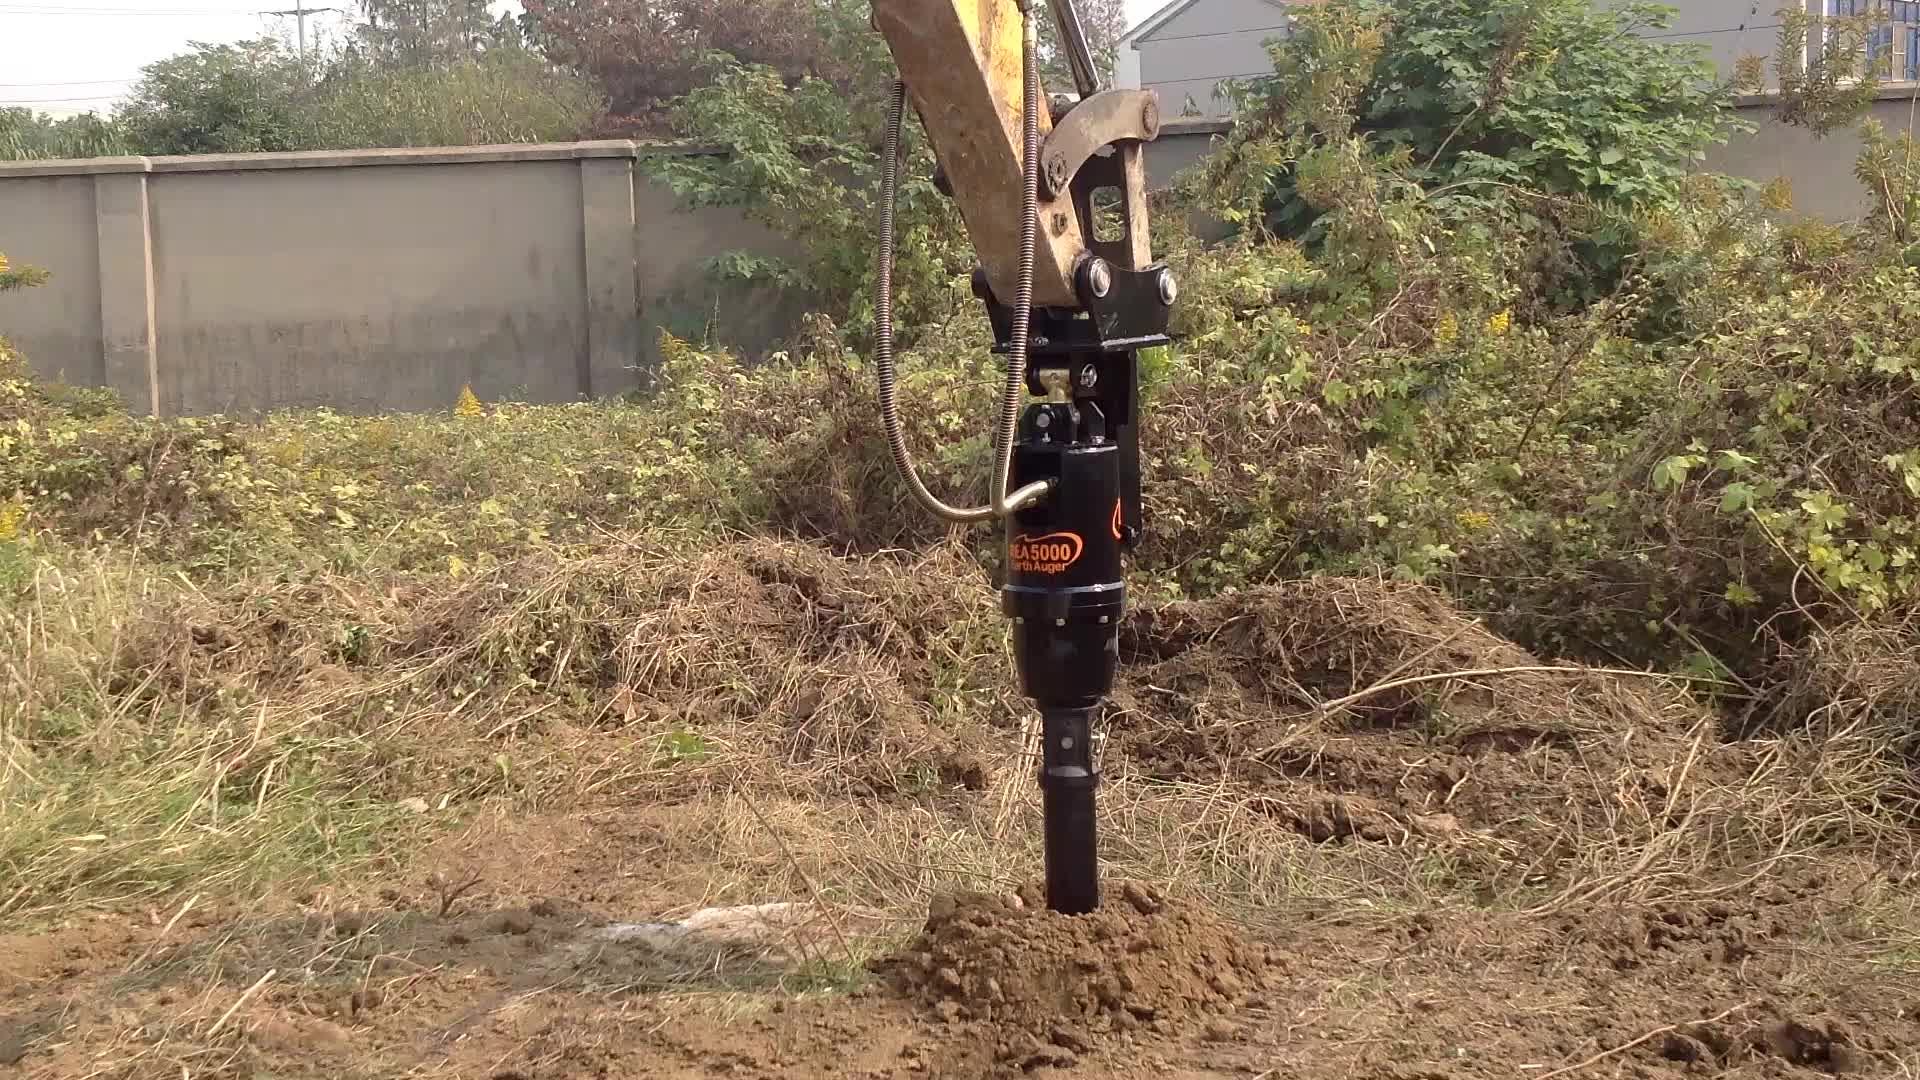 Ground Hole Drilling Machines, Digger, Auger For Excavator, Hydraulic Auger Drive